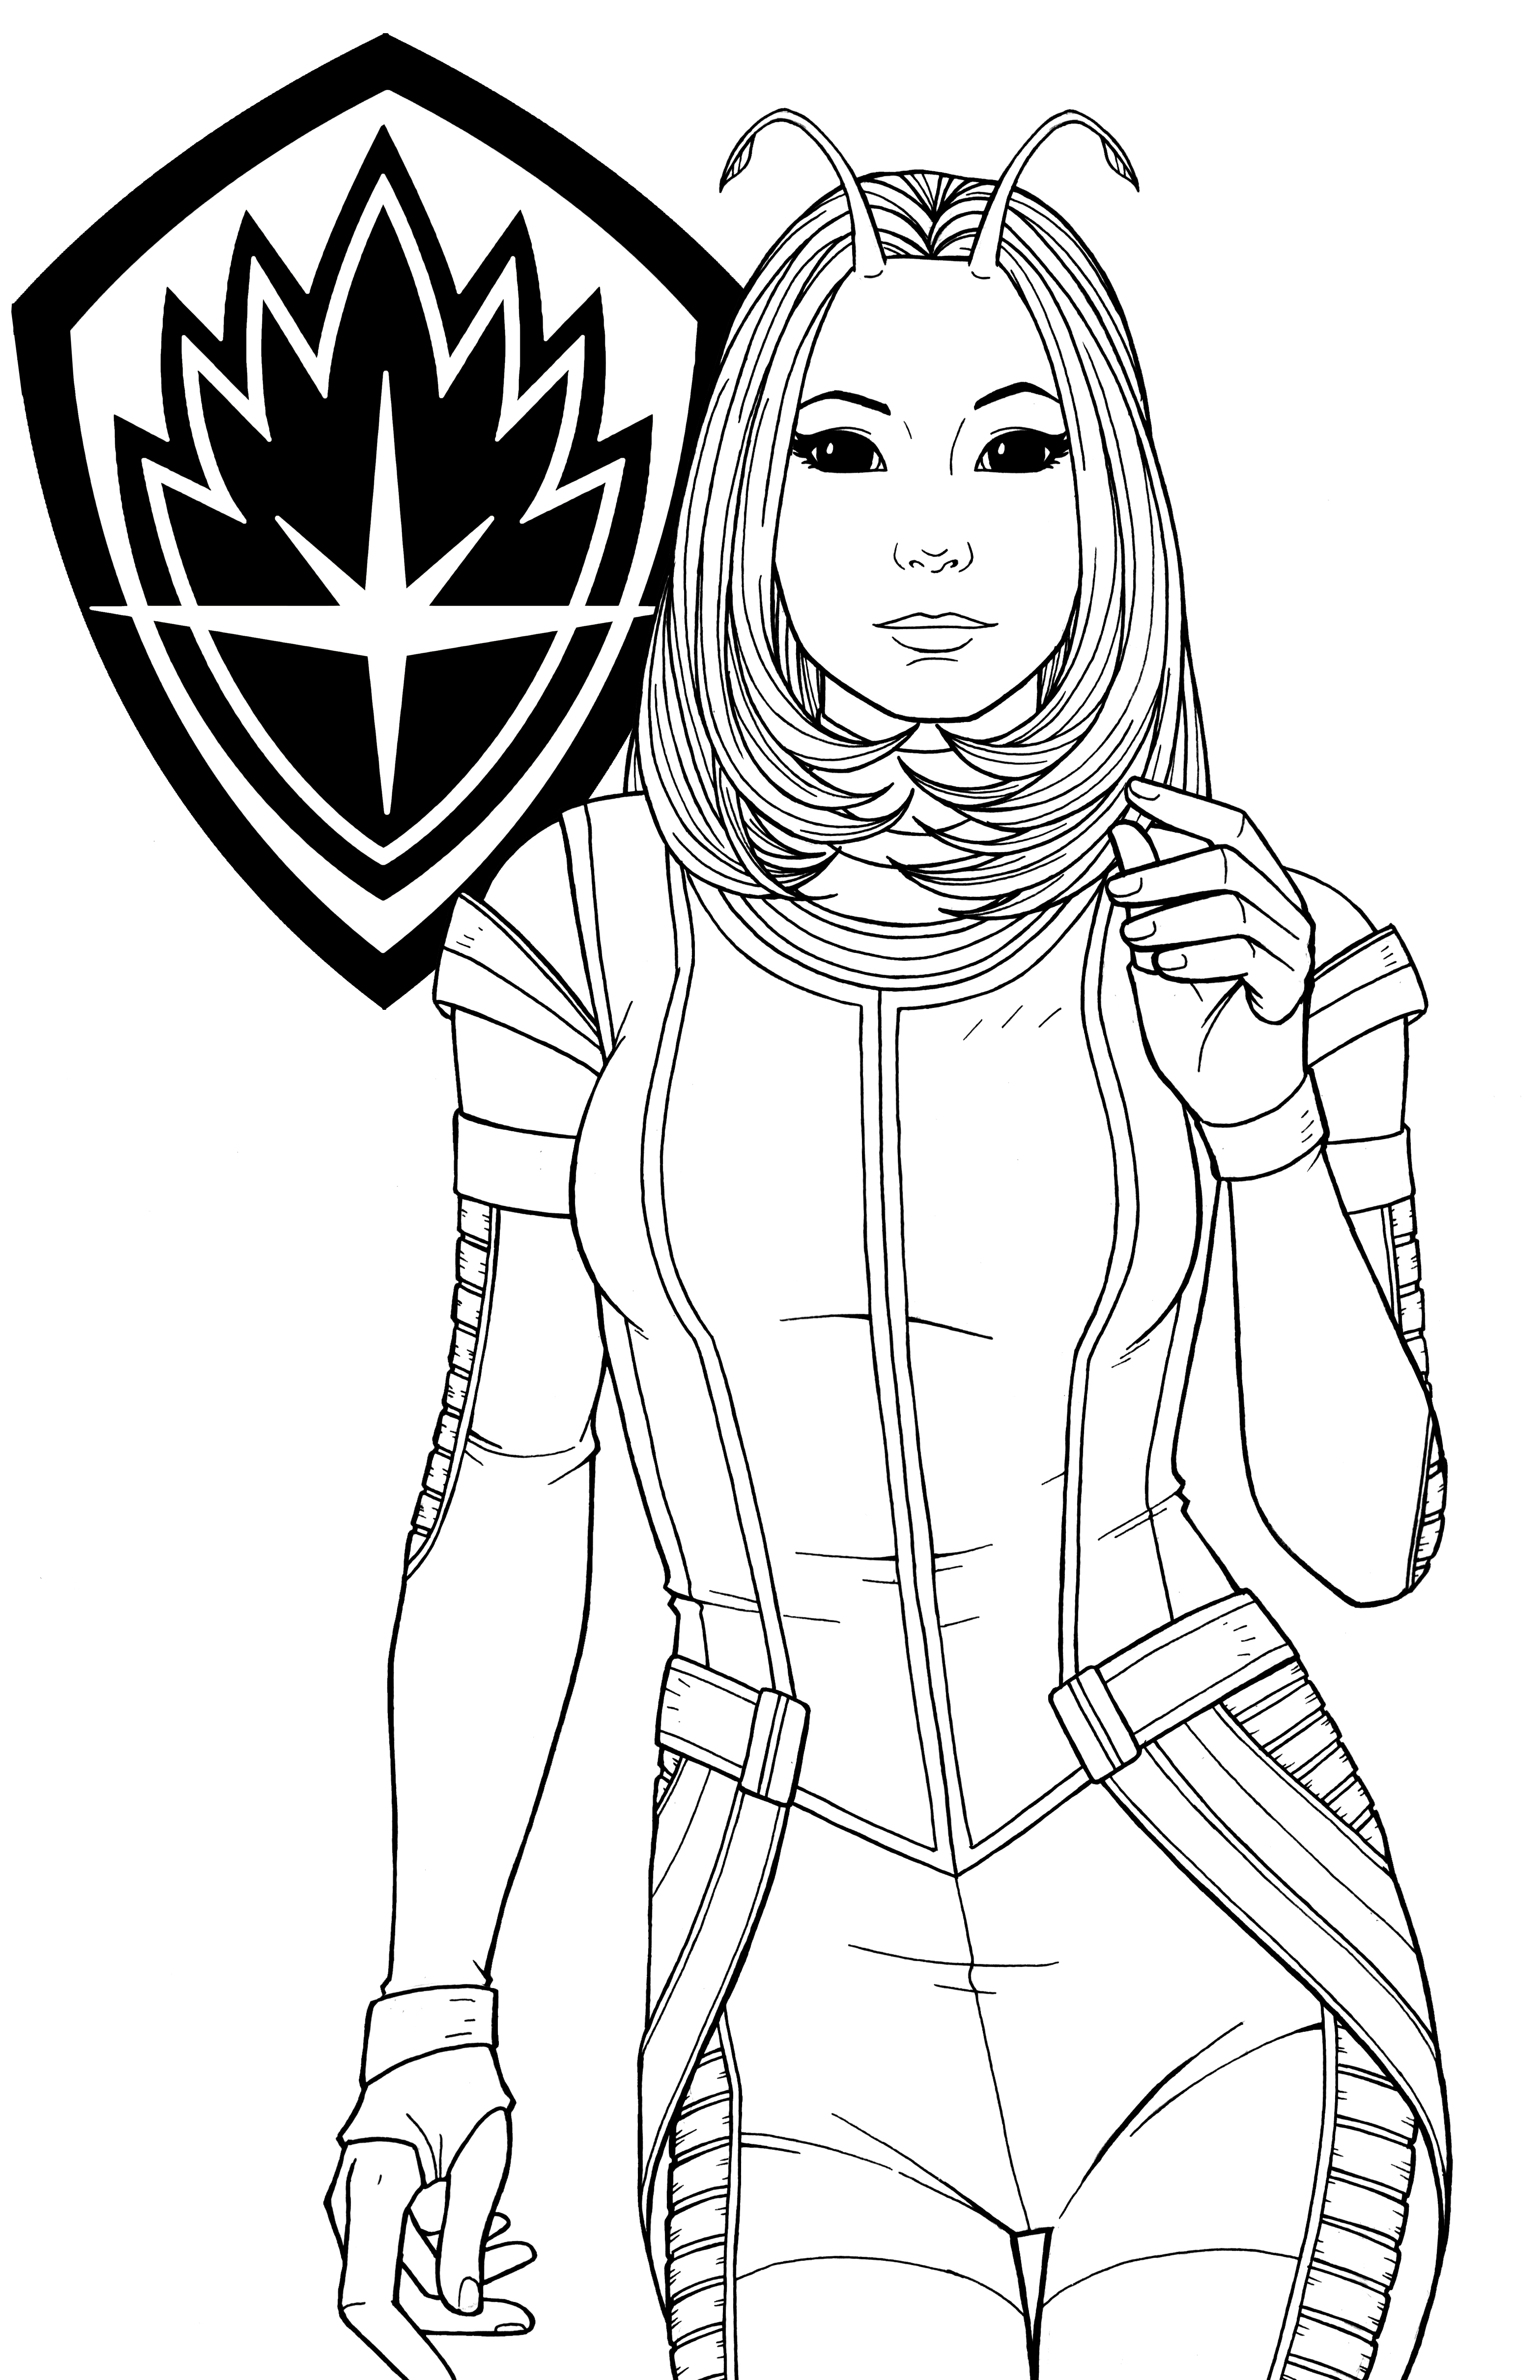 We Piece Together Coloring Pages